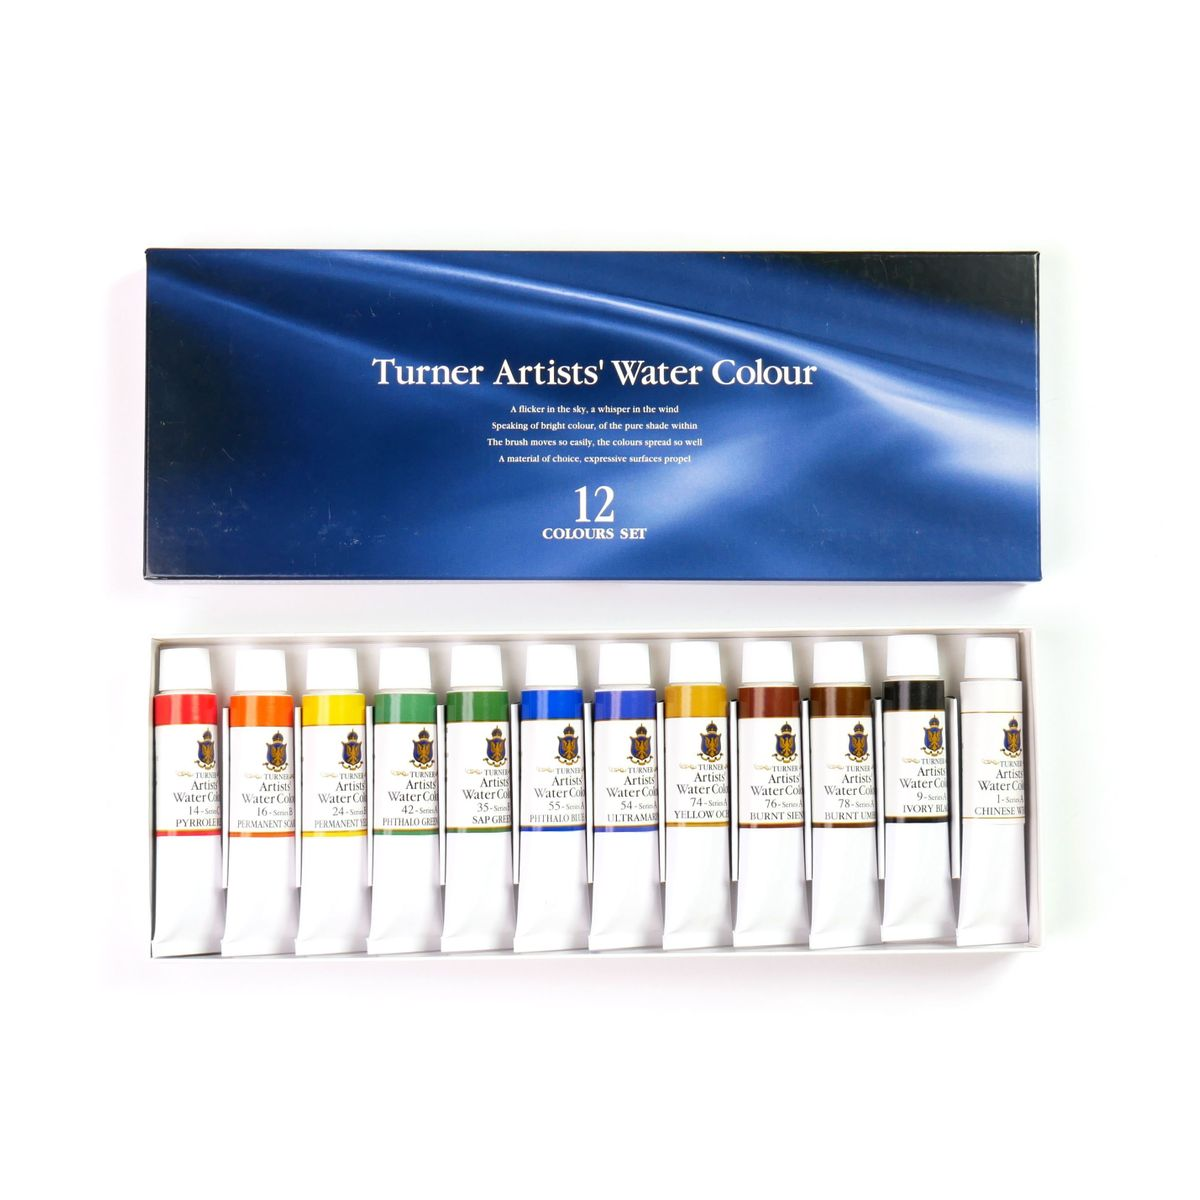 Kit Aquarela Turner Colour Works Artists' Water Colour 12 Cores 15ml